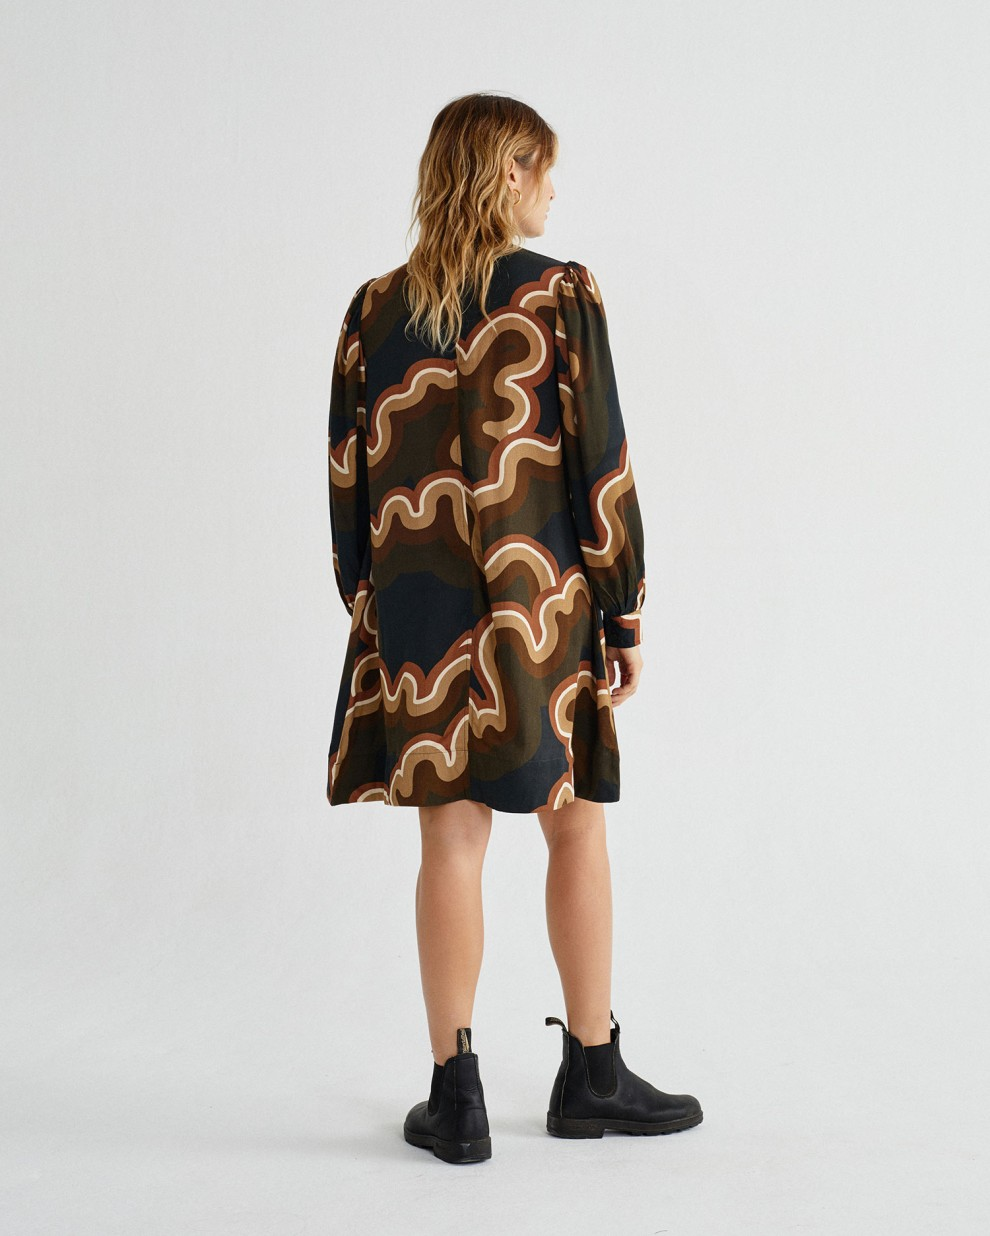 PSYCHEDELIC BLACK FLORA DRESS